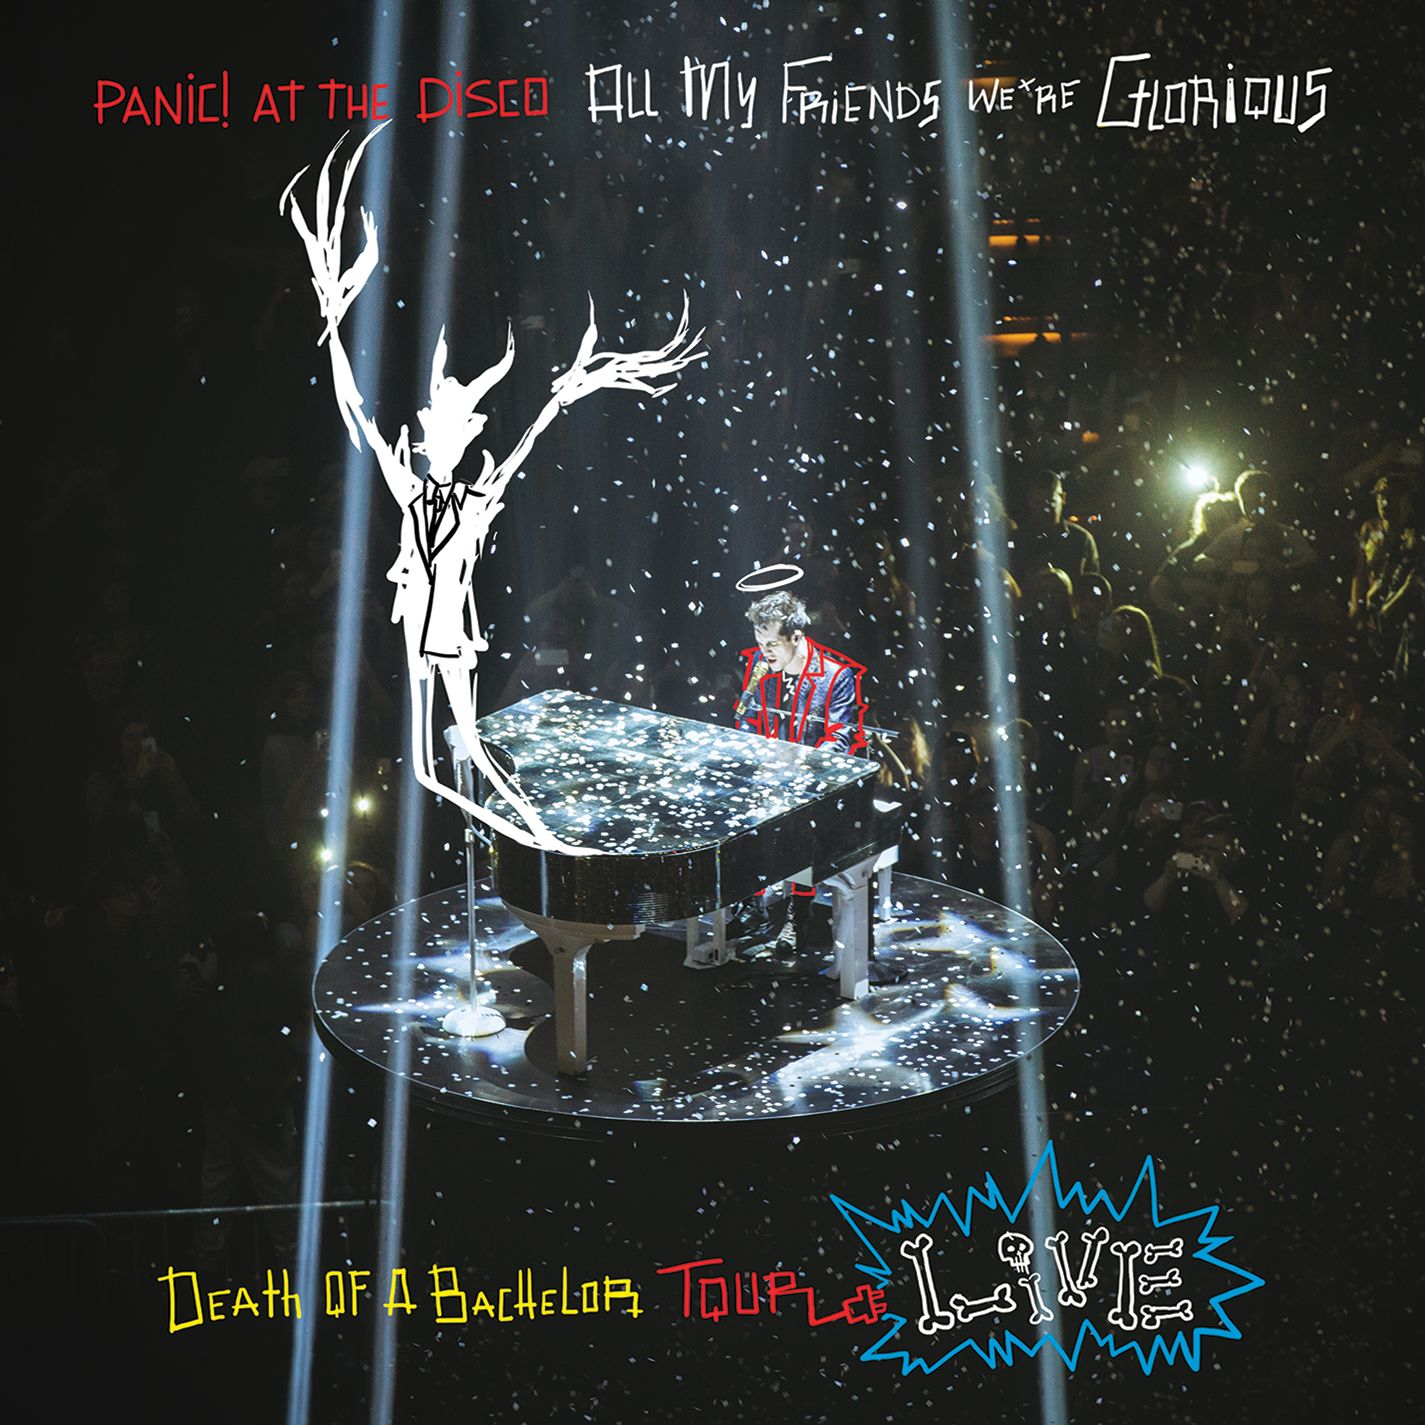 The Suburban Bachelor: Panic! At The Disco Radio: Listen To Free Music & Get The